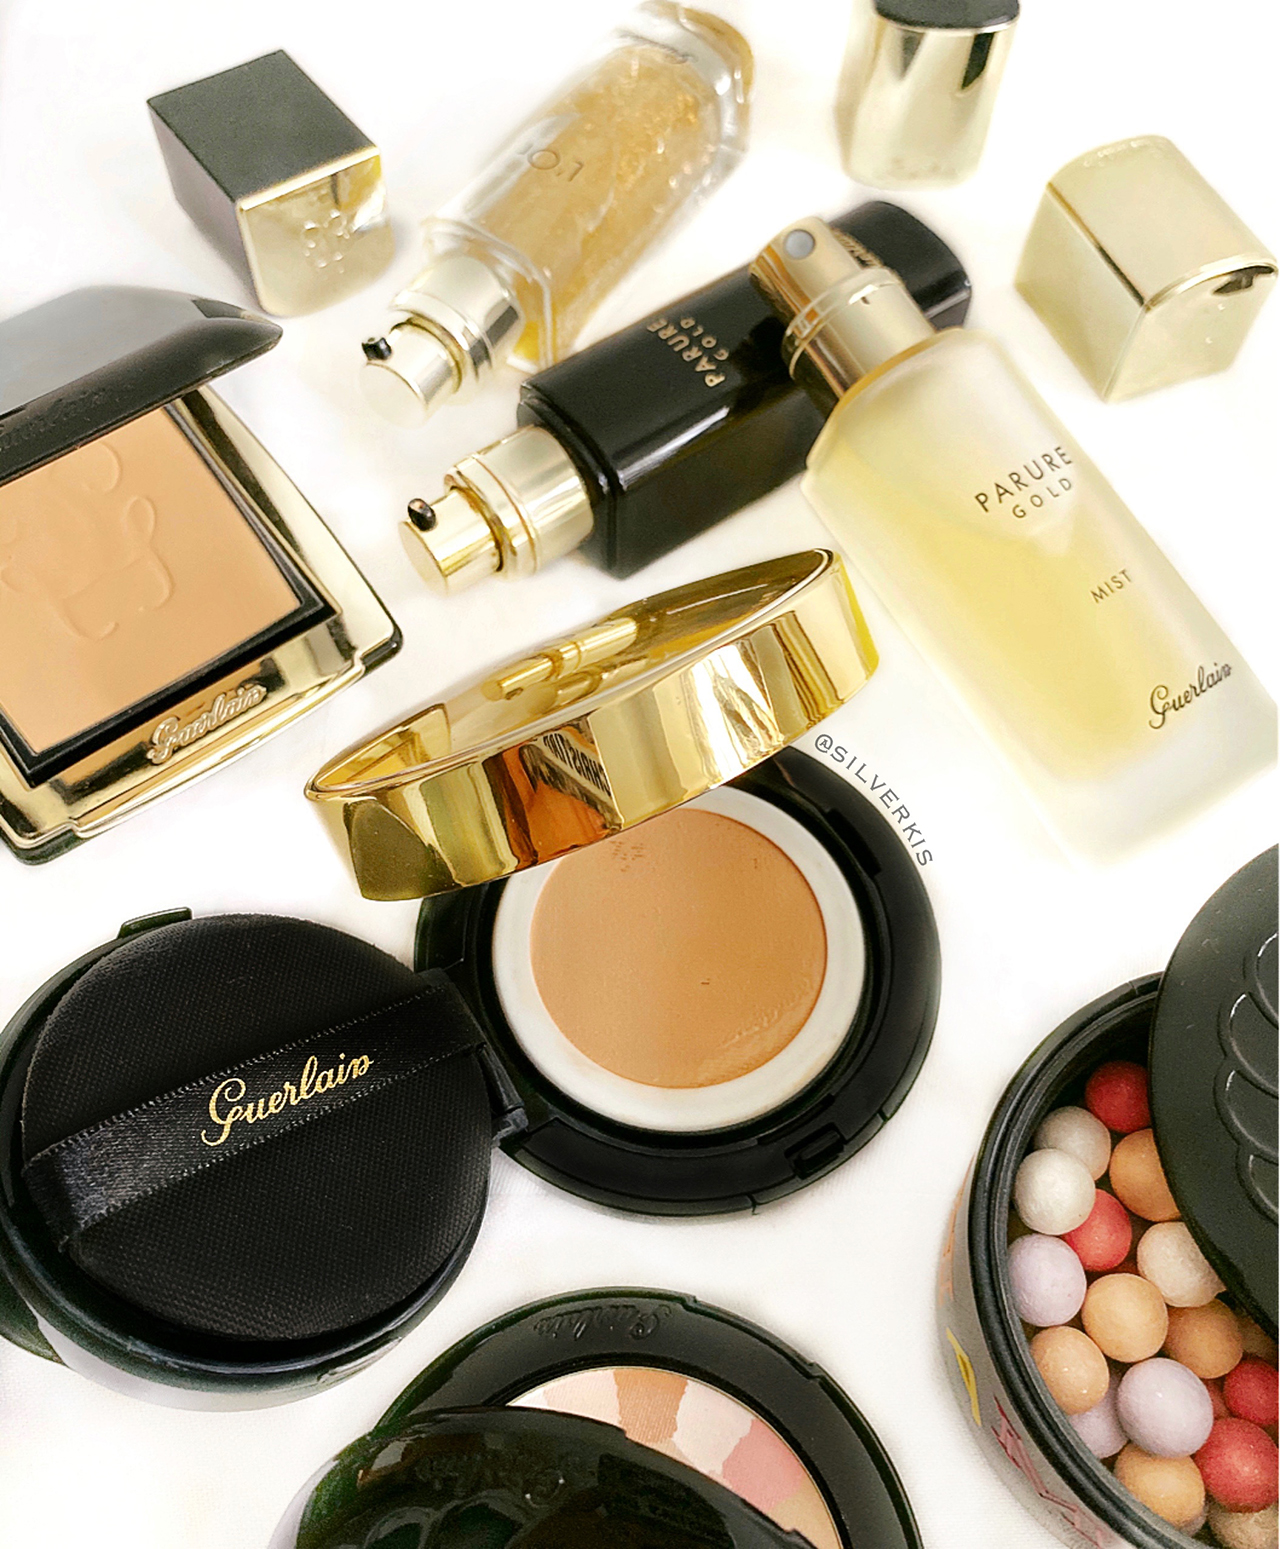 Guerlain Parure Gold Cushion & Mist